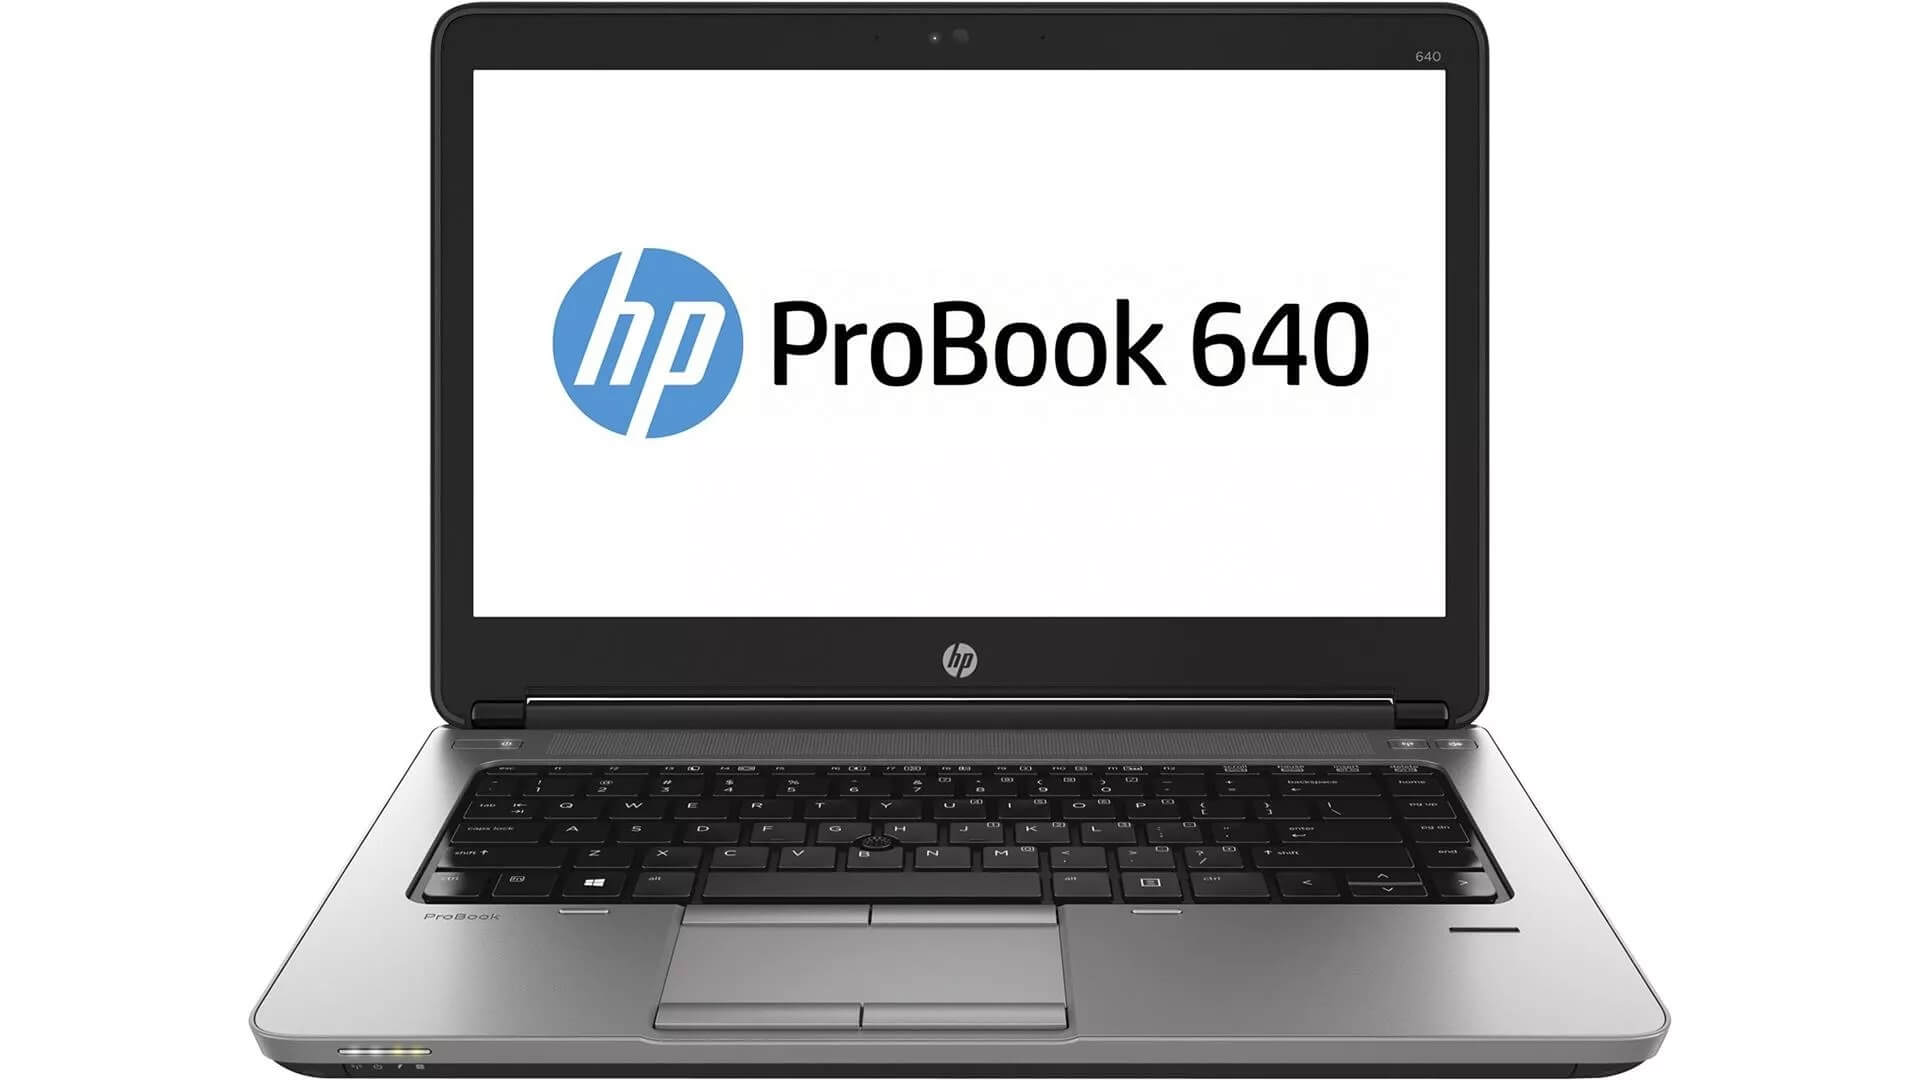 HP PROBOOK 640 G1 I5-4310M 2.7 / 8192 MB DDR3L / 256 GB SSD / WINDOWS 10 PRO REF / 14